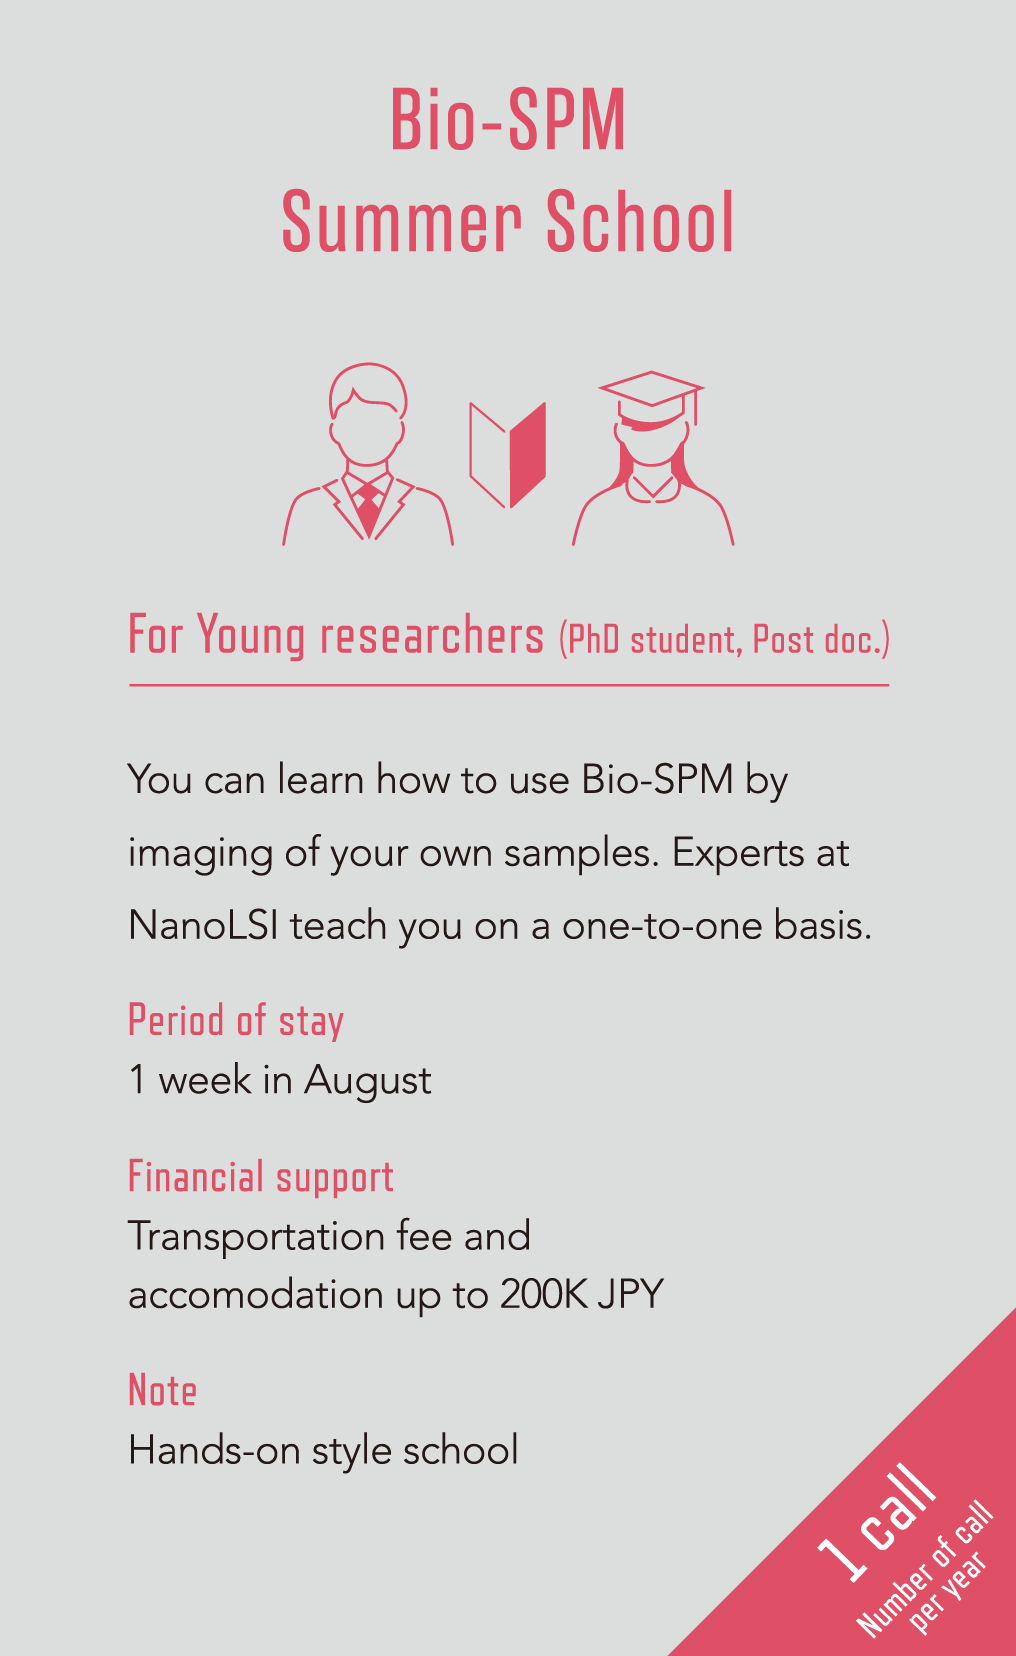 Bio-SPM Summer School